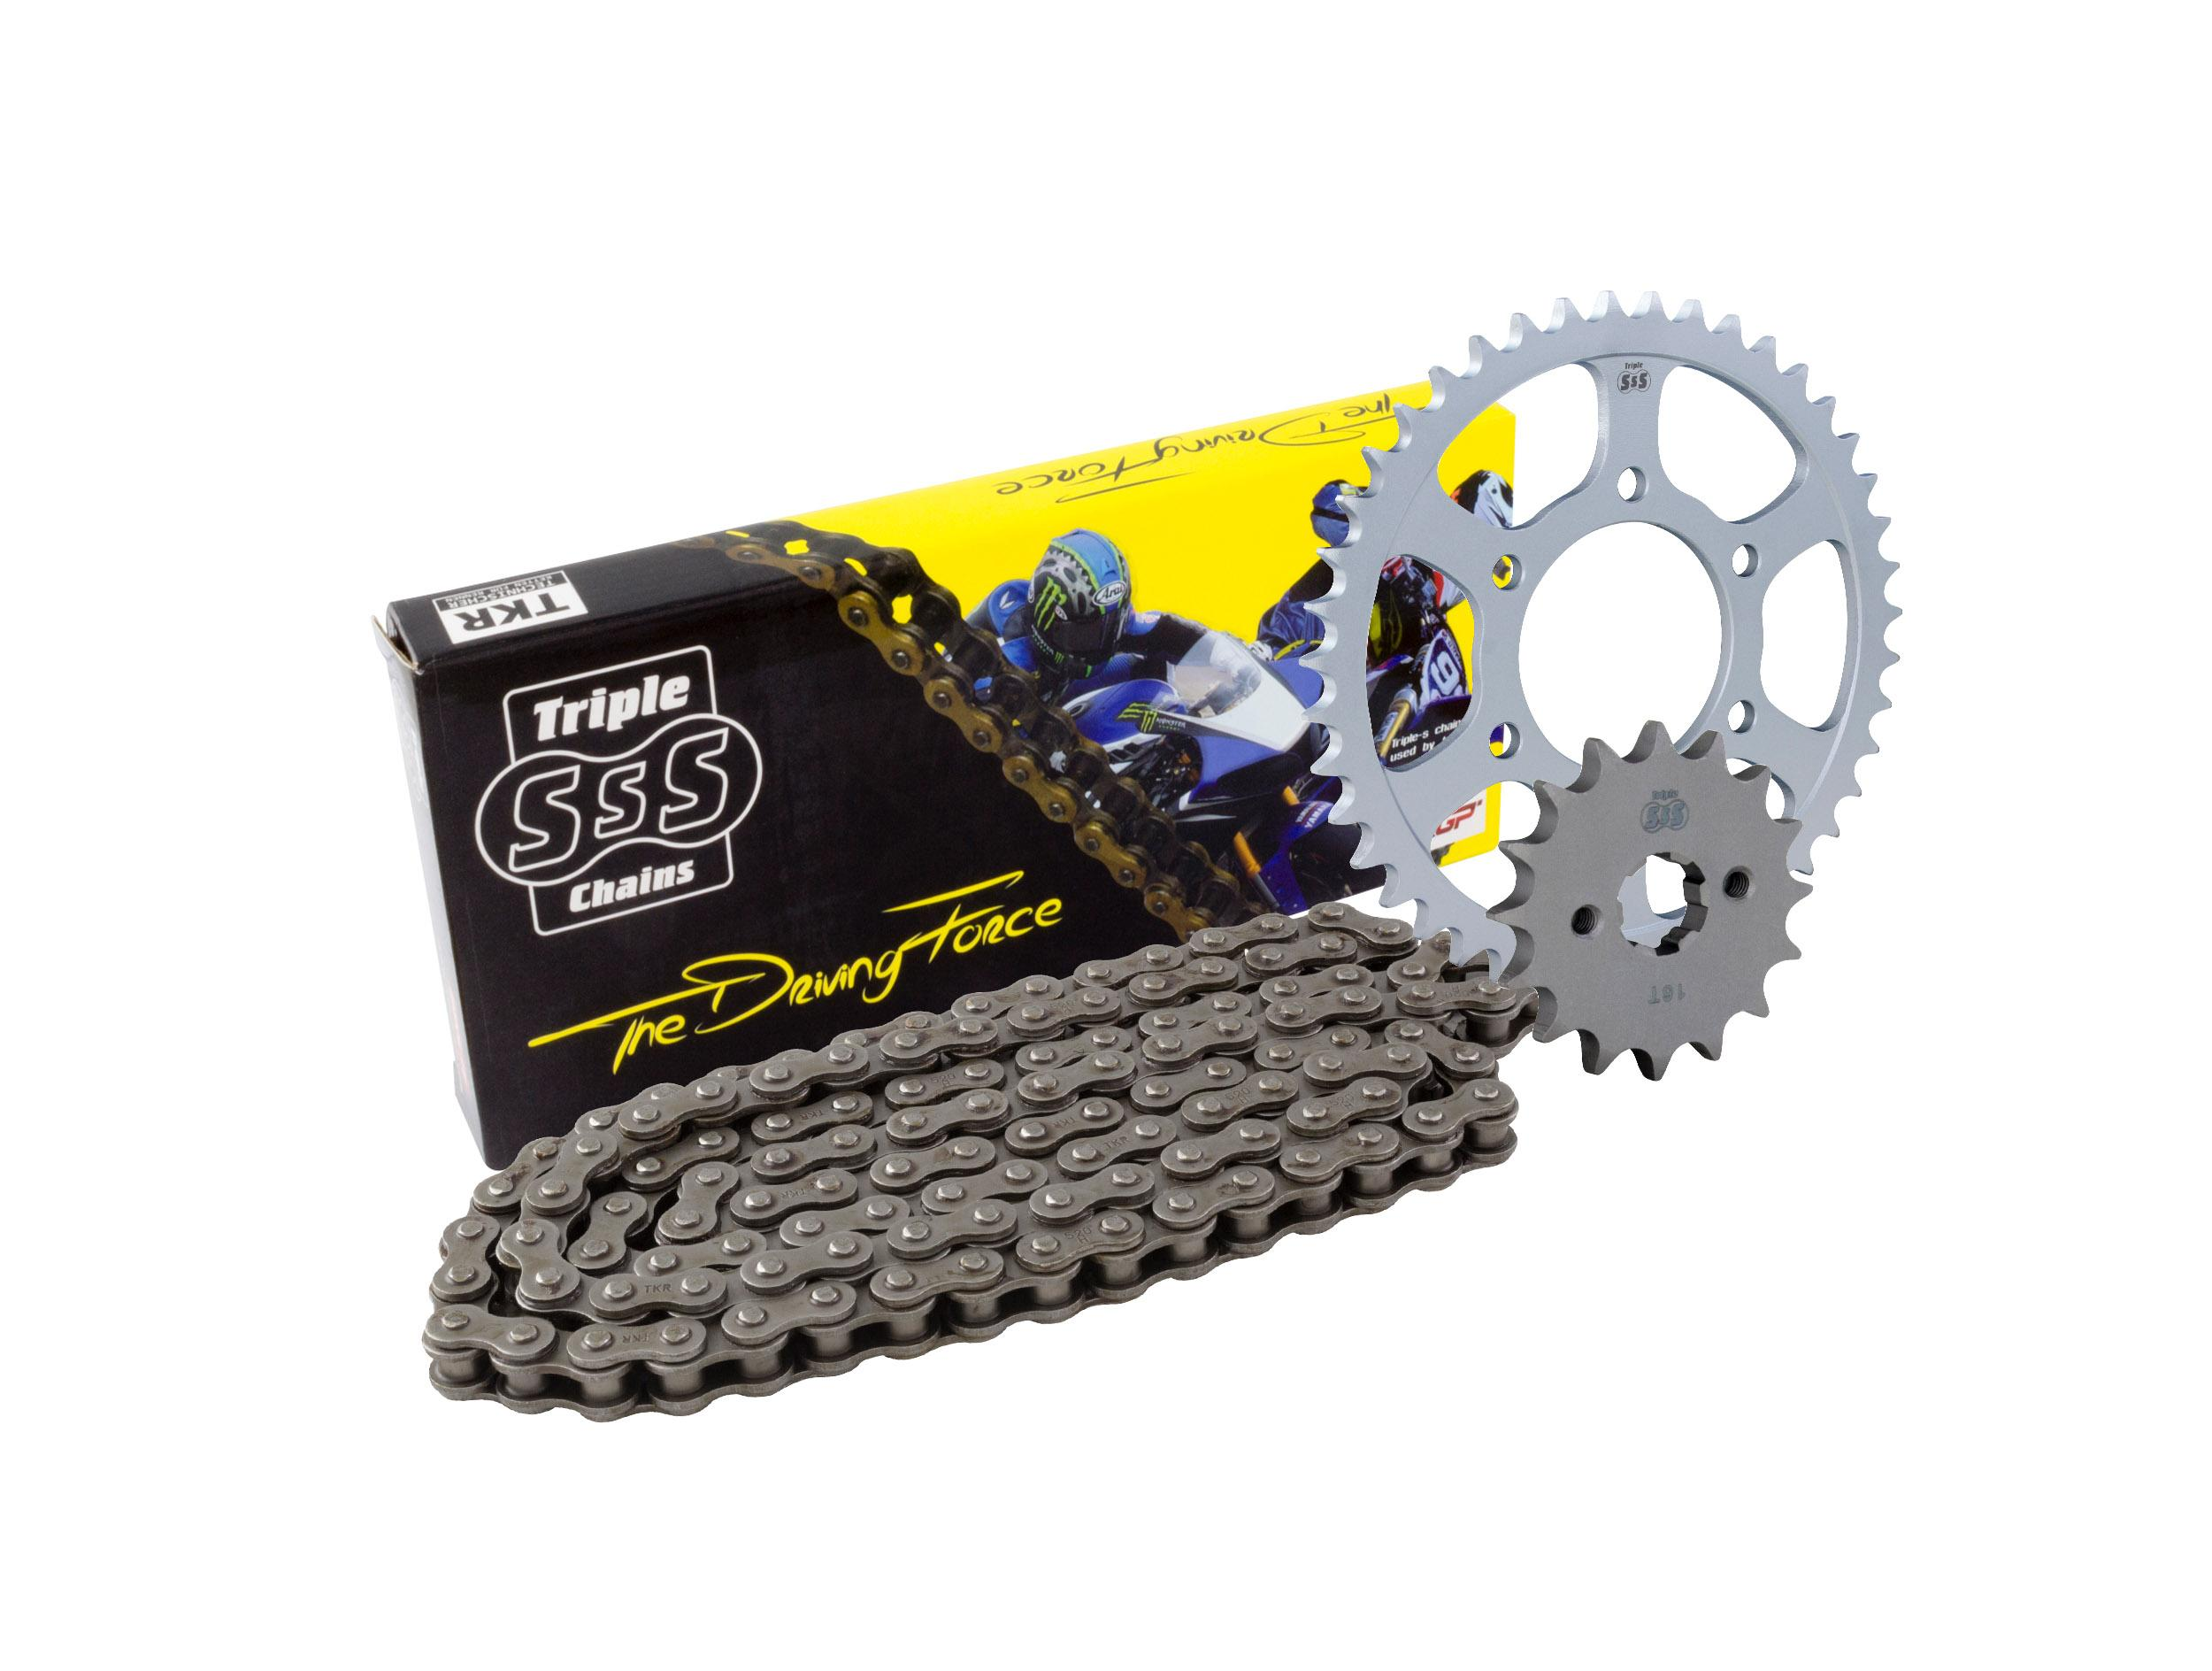 Aprilia 125 RS Replica 93-03 Chain & Sprocket Kit: 14T Front, 39T Rear, HD Chain 520H 108Link